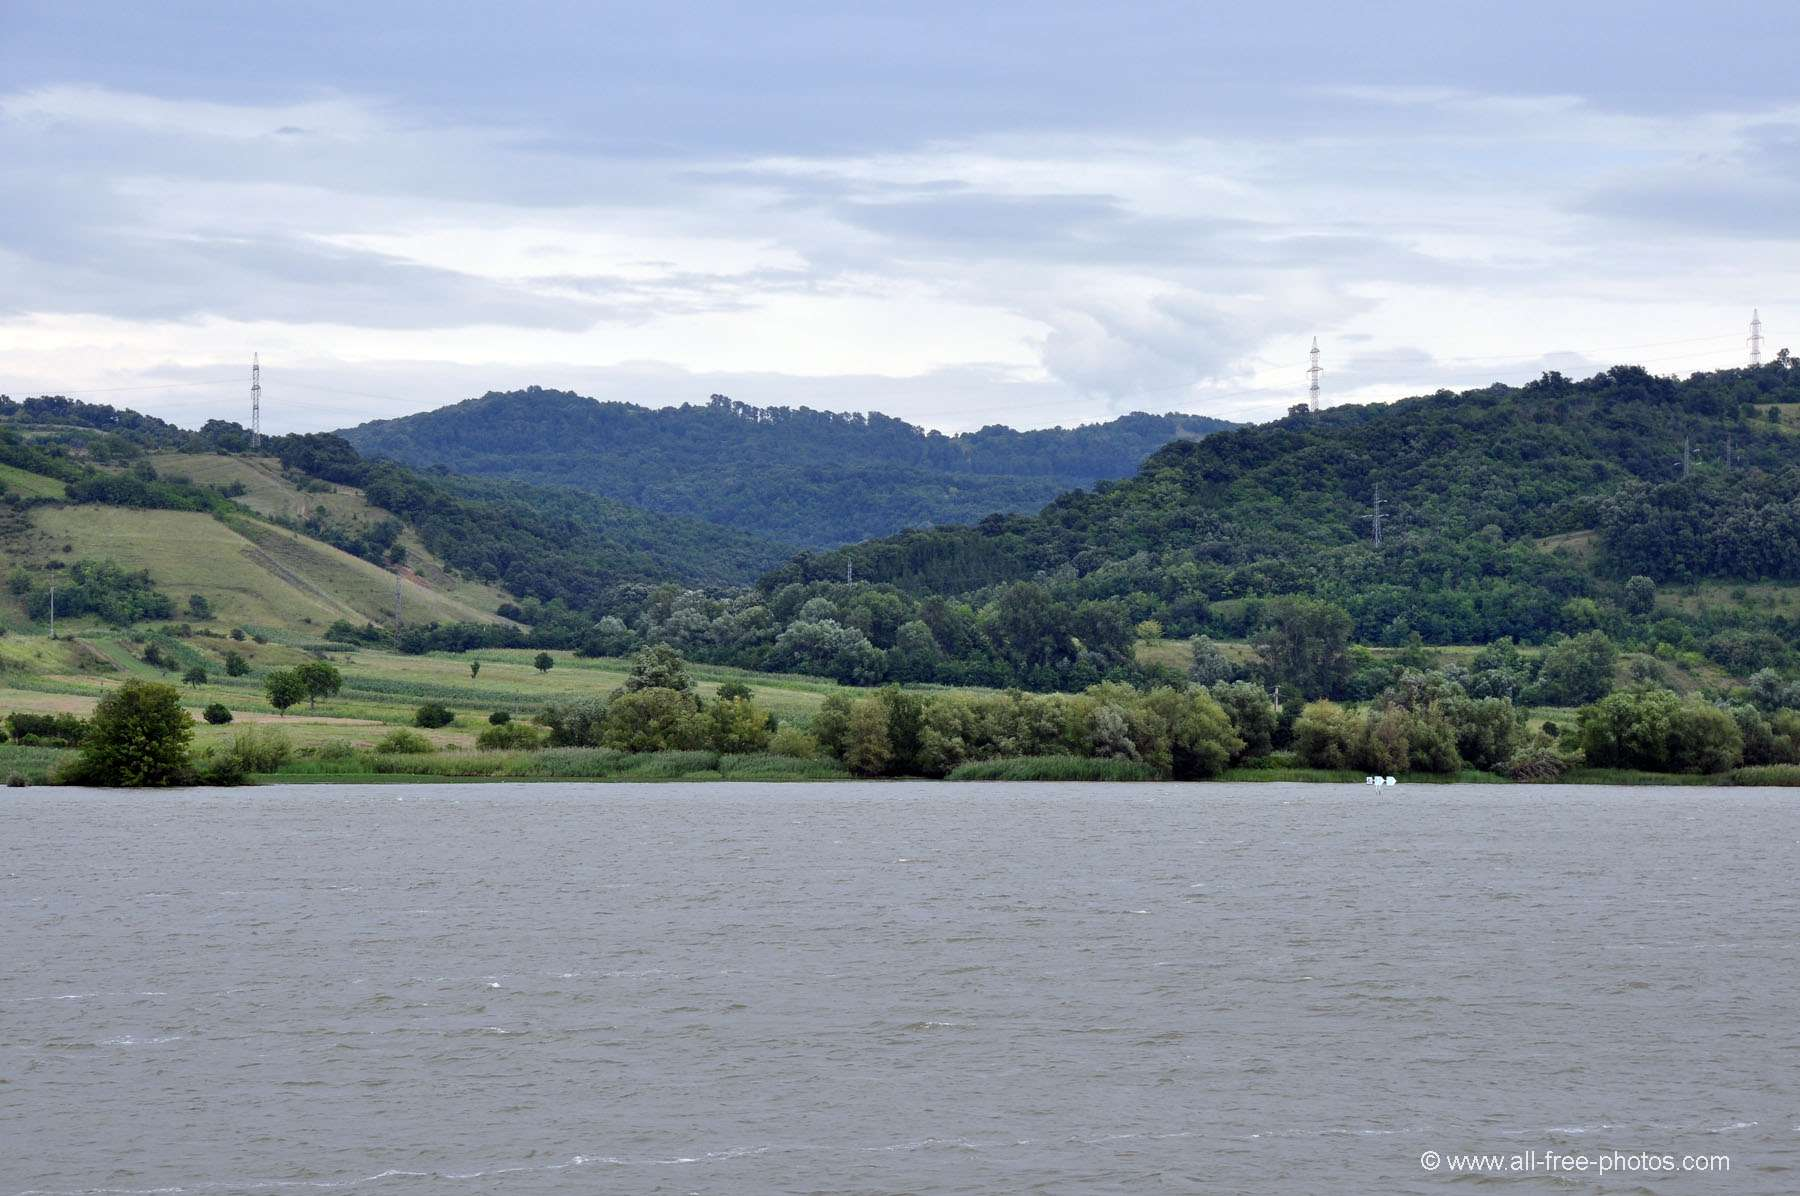 The Danube - Serbia